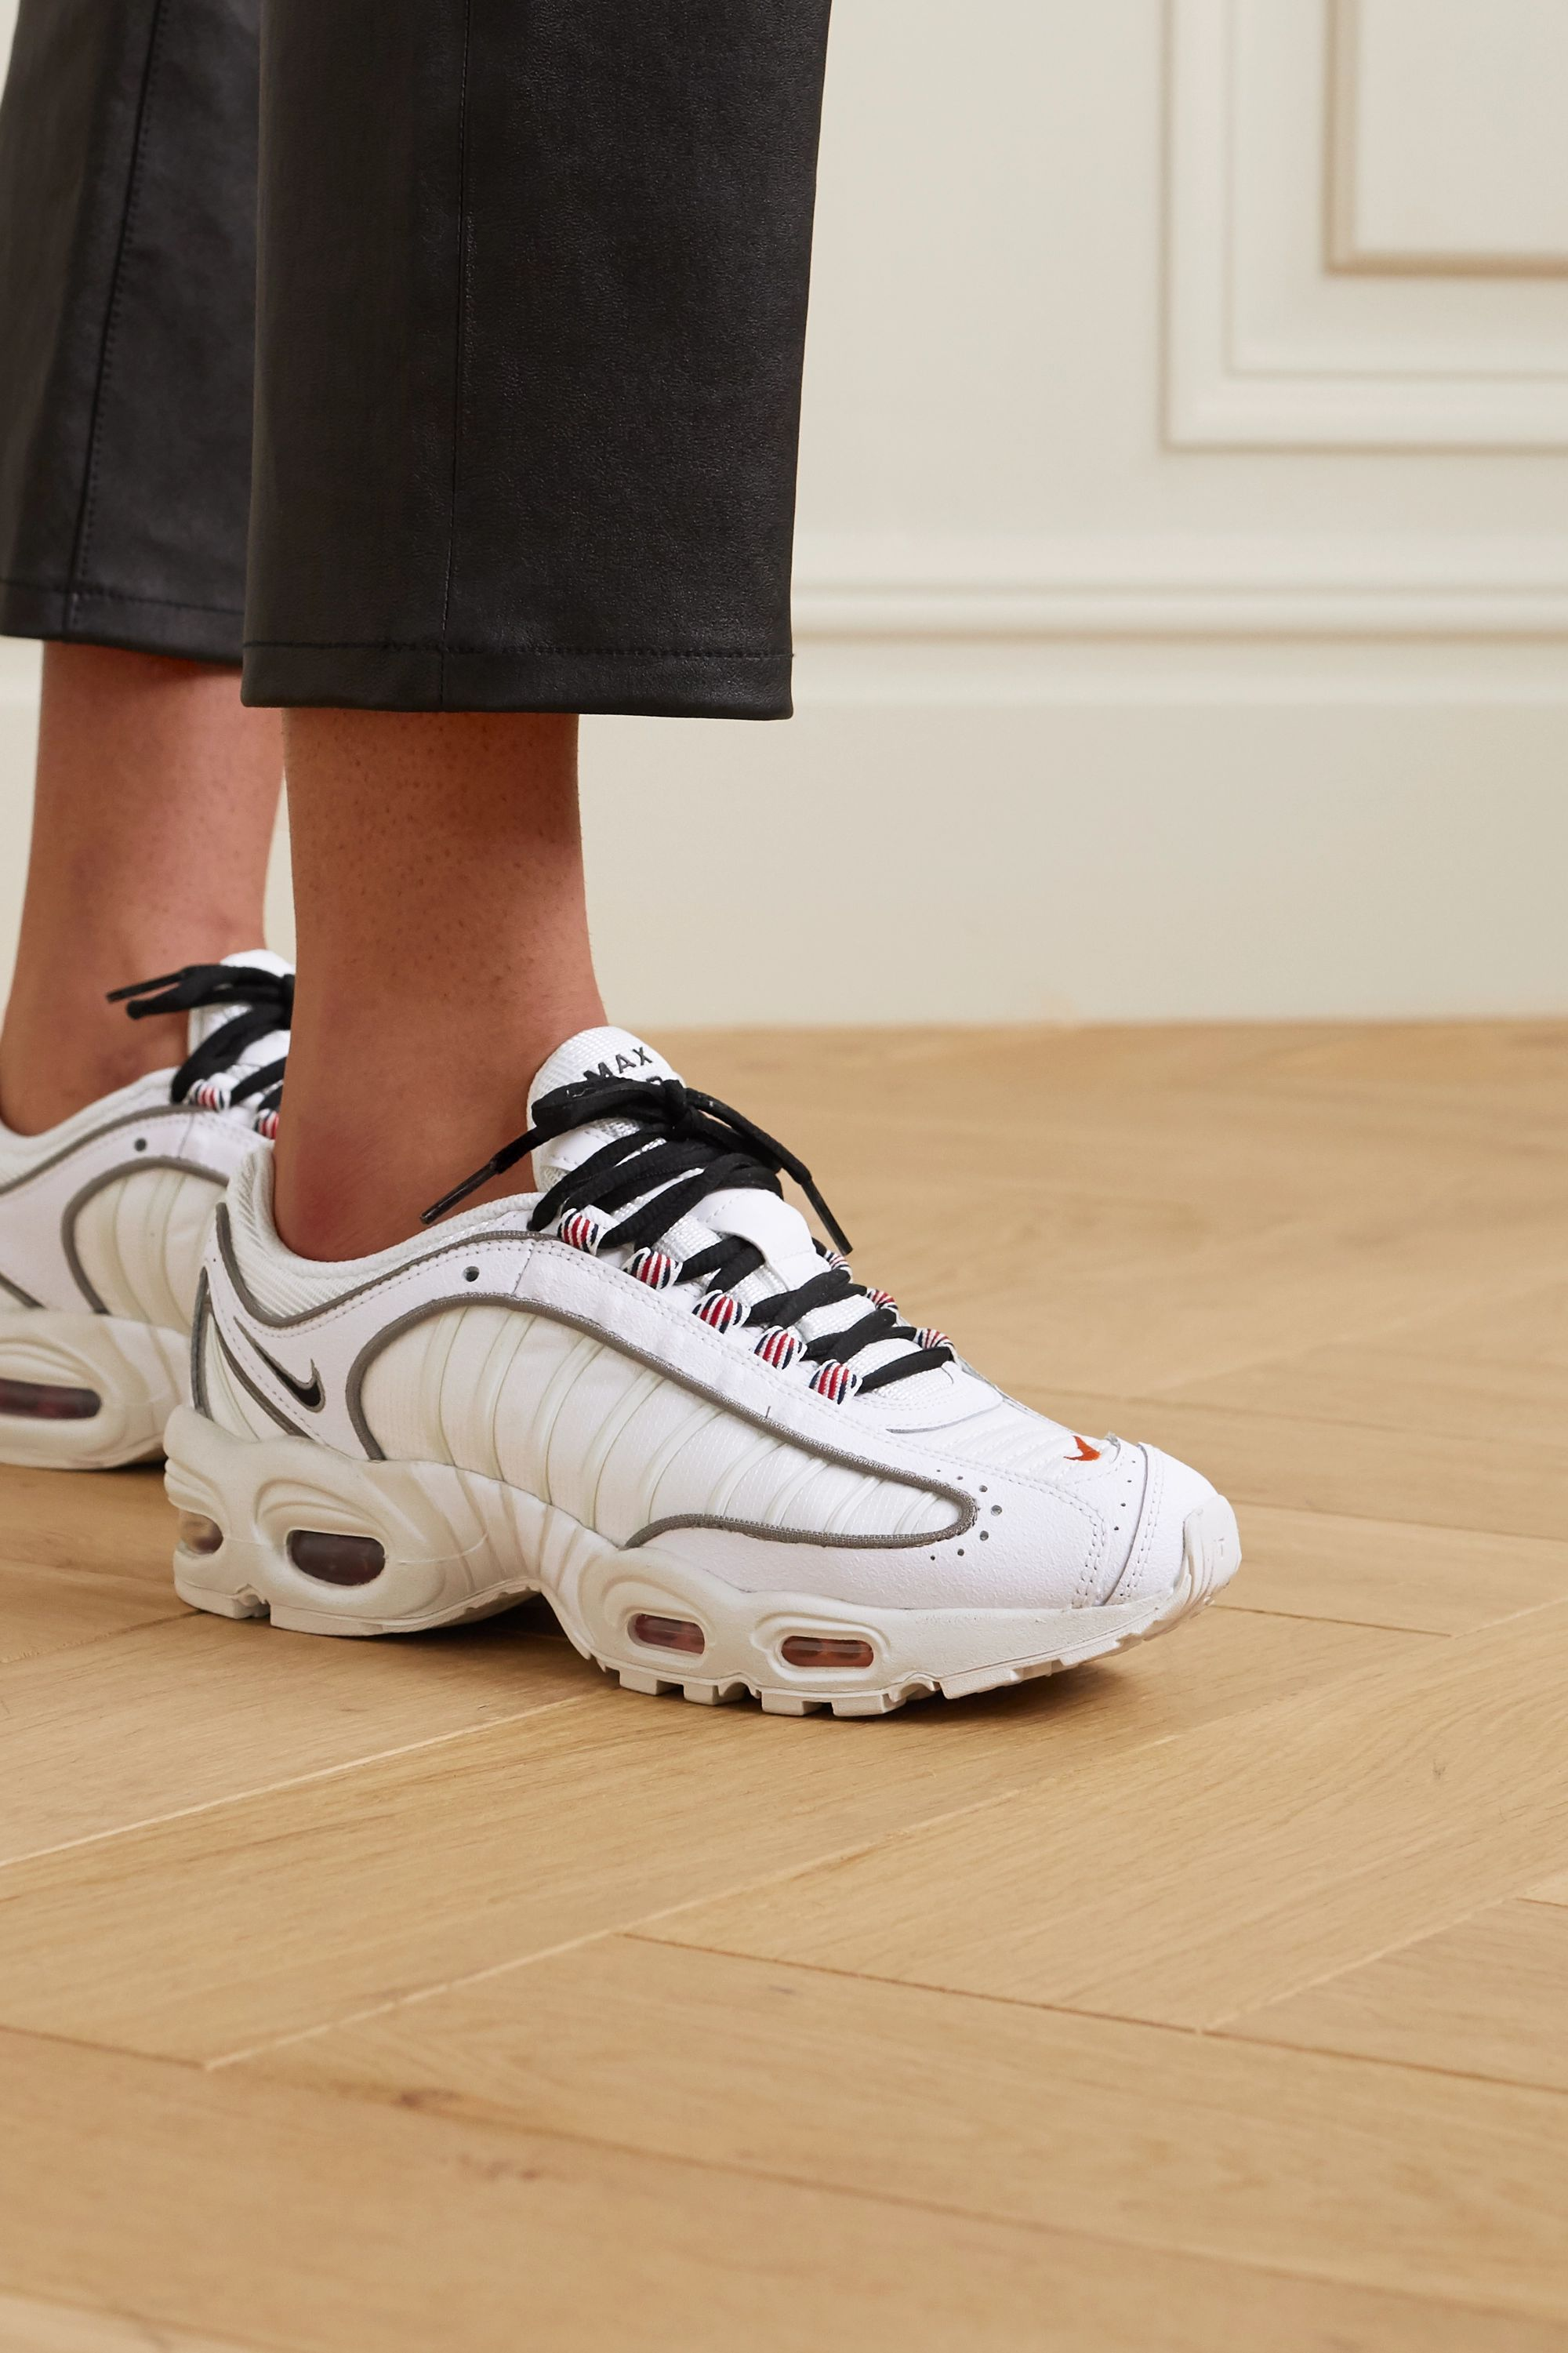 Nike Air Max Tailwind IV mesh and faux leather sneakers